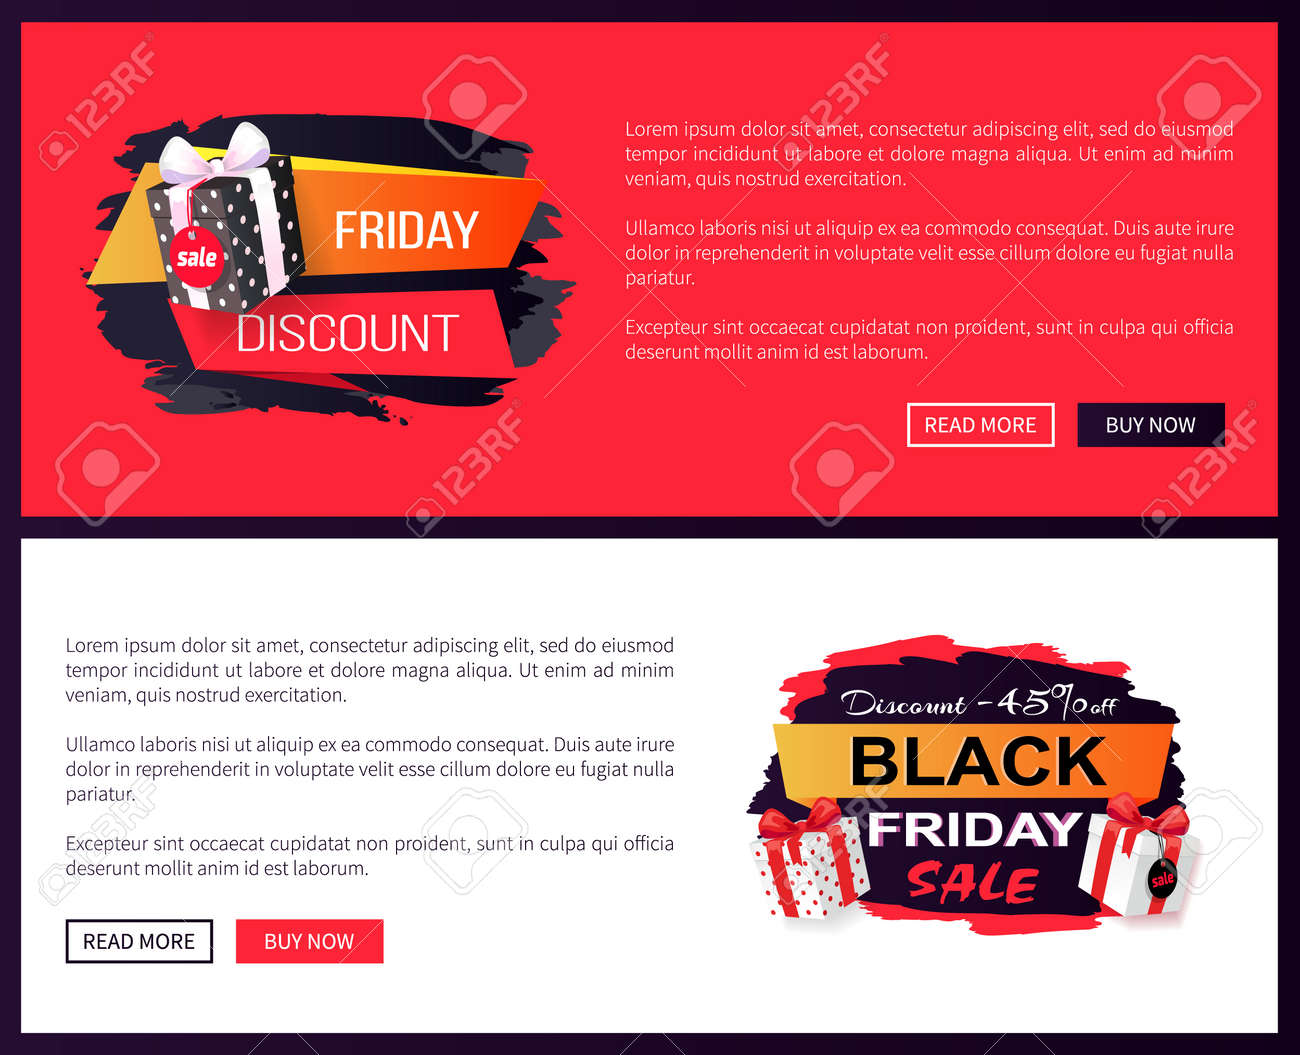 Black Friday Sale Off Promo Stickers Advertising Coupons With Royalty Free Cliparts Vectors And Stock Illustration Image 126168585